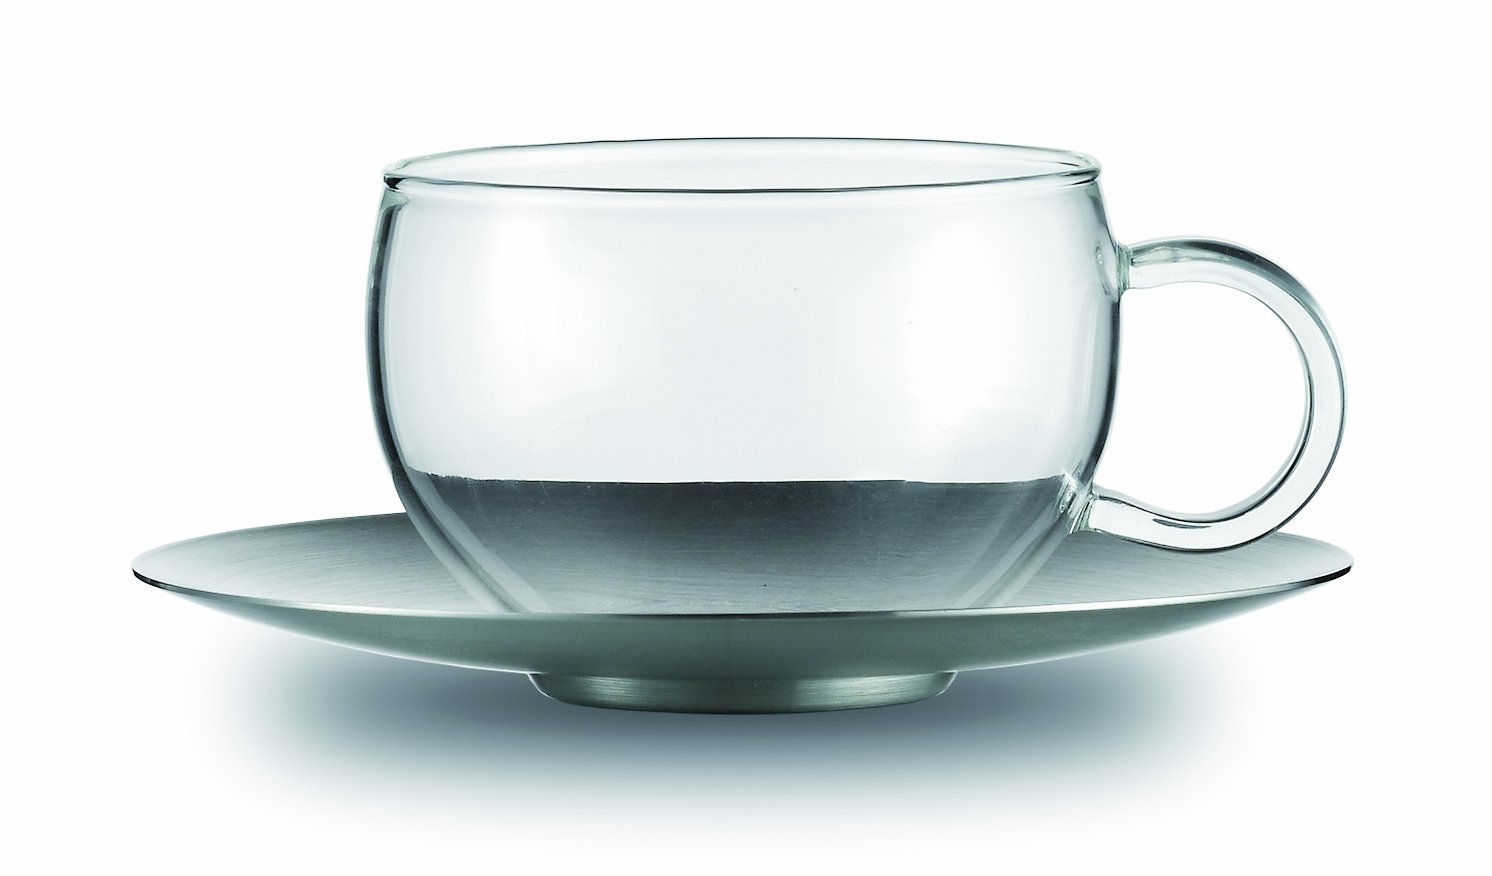 Jenaer Glas Concept Tea Collection Good Mood Glass Cup with Stainless Steel Saucer, 6.8-Ounce, Set of 2